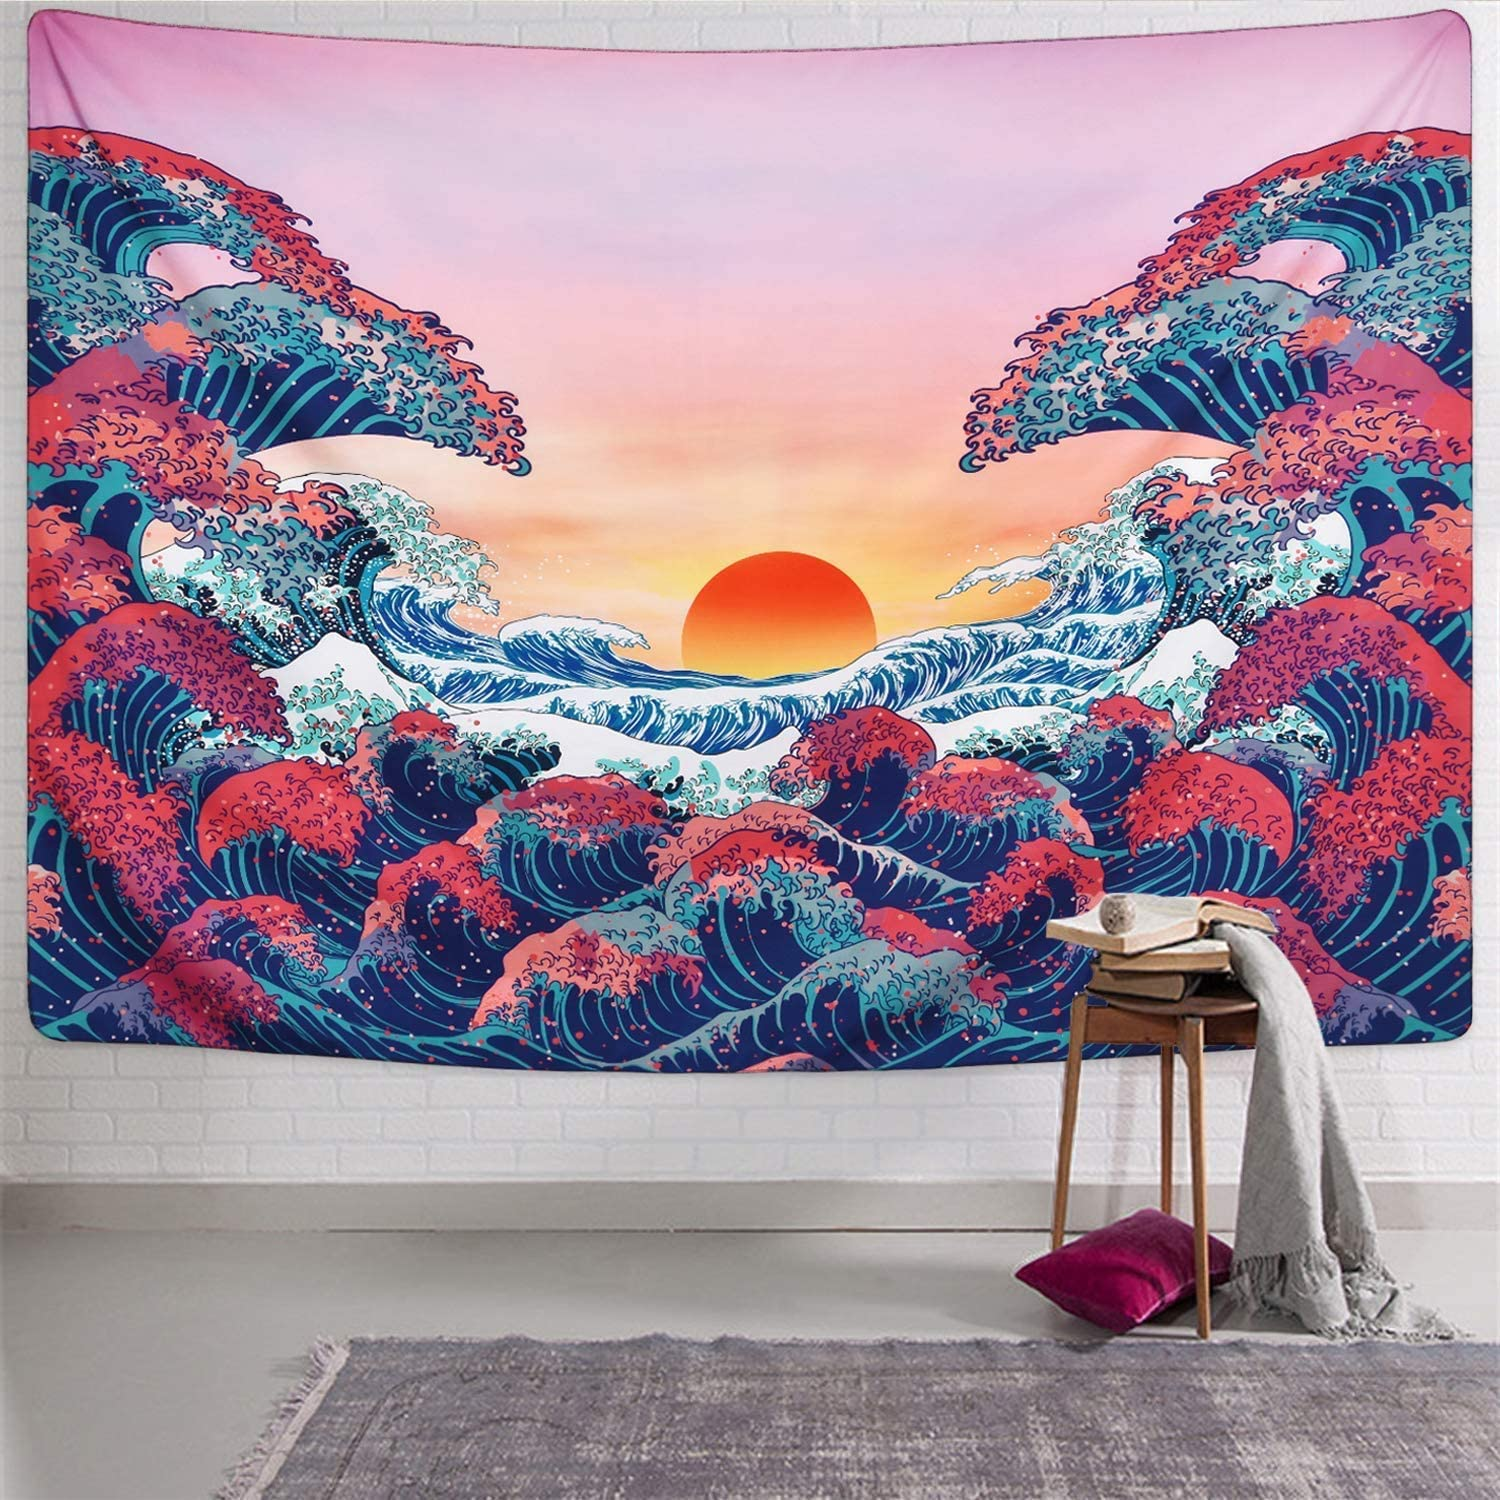 DORCAS Blue Mandala Tapestry Bohemian Flower Wall Hanging Psychedelic Tapestry Hippie Tapestries Floral Medallion Tapestry for Bedroom Living Room Dorm Decor